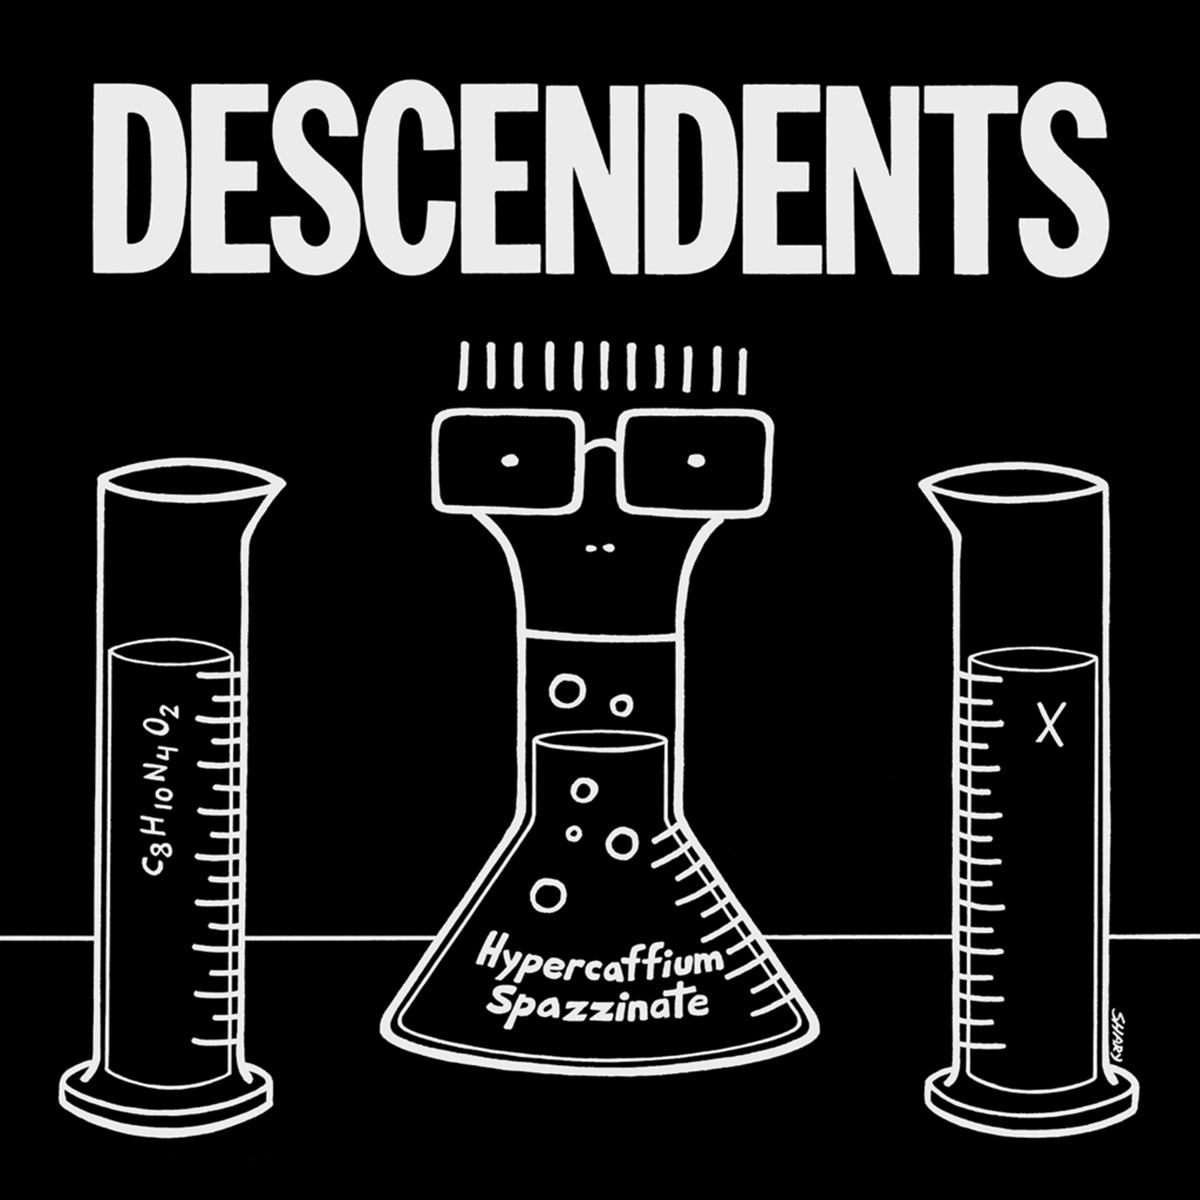 hypercaffium-spazzinate-descendents